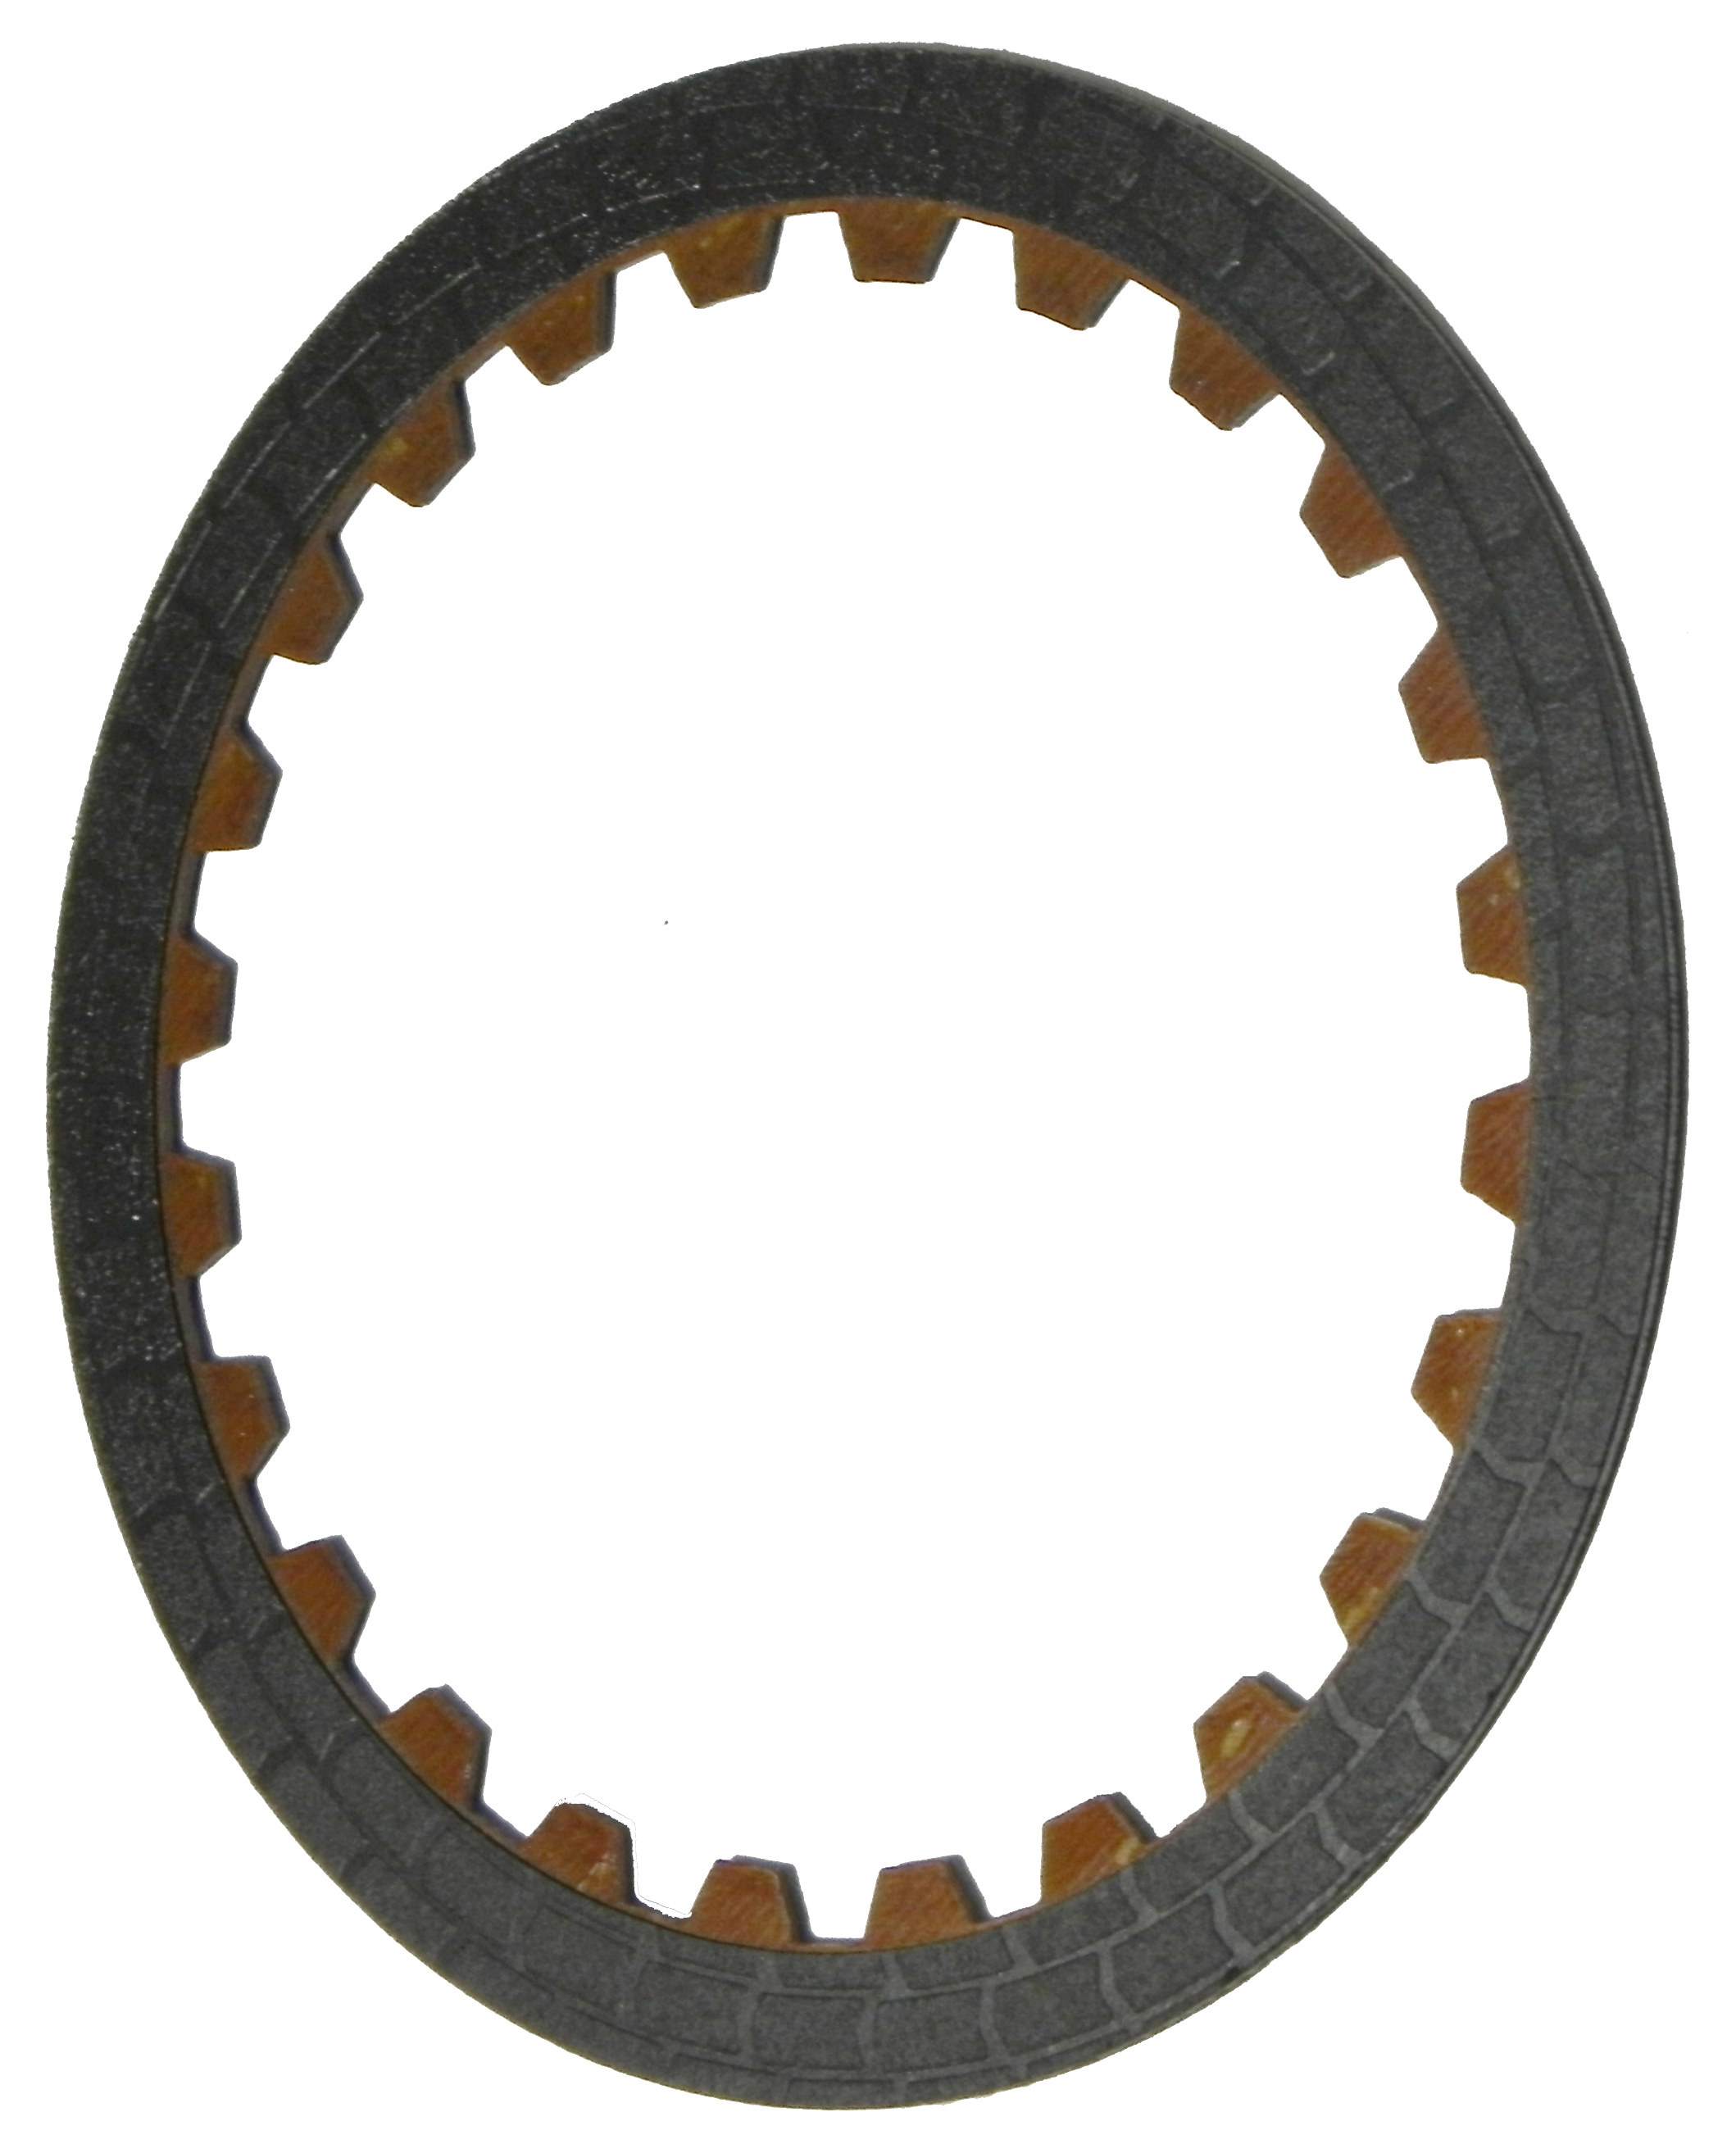 8HP45 (HT) Hybrid Technology Friction Clutch Plate